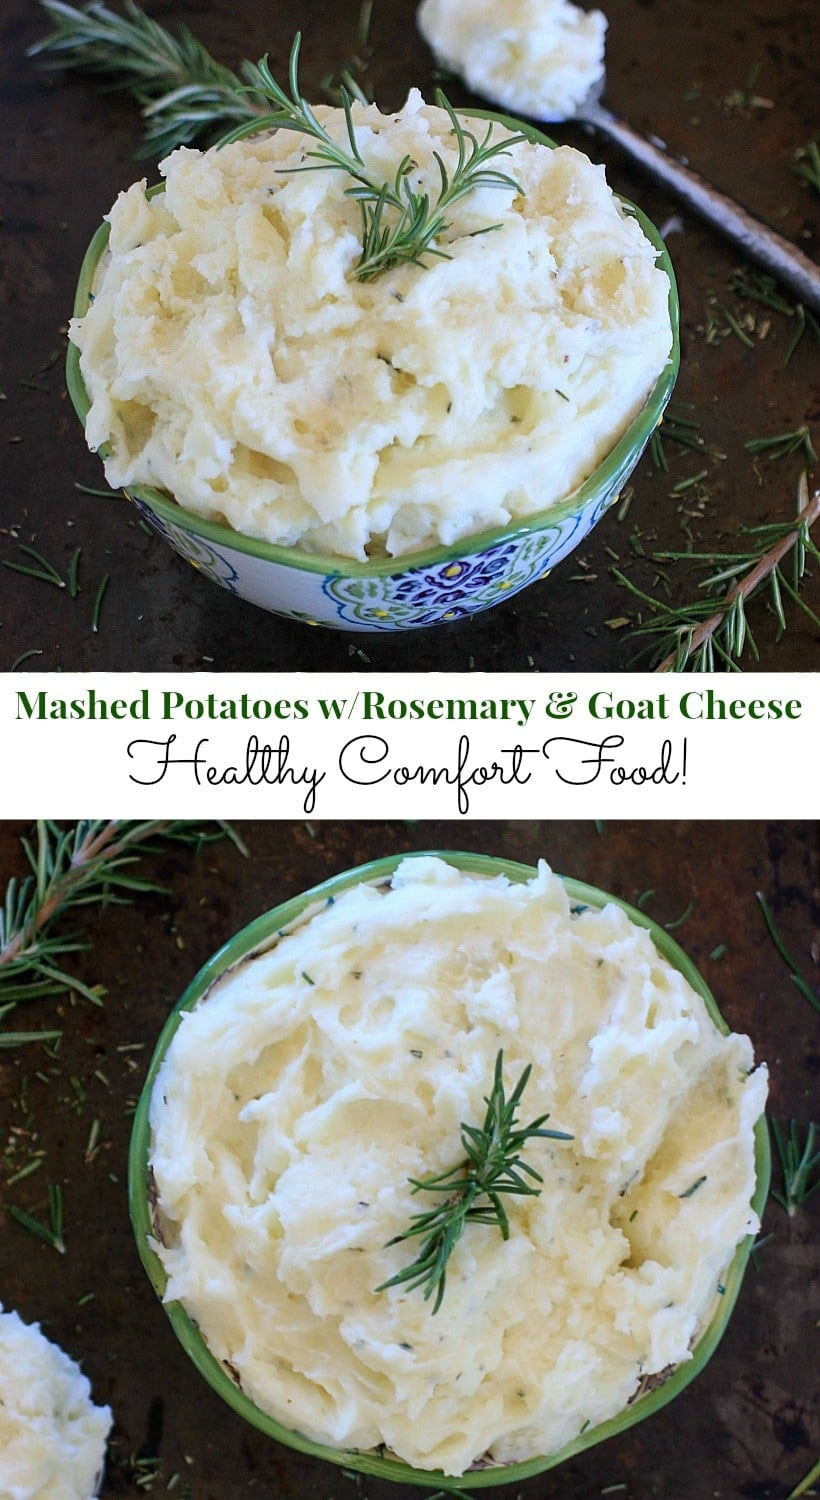 Healthy comfort food and so easy too! Healthy Mashed Potatoes with Rosemary and Goat Cheese. #AD Get the recipe @thespicyrd www.eastewart.com